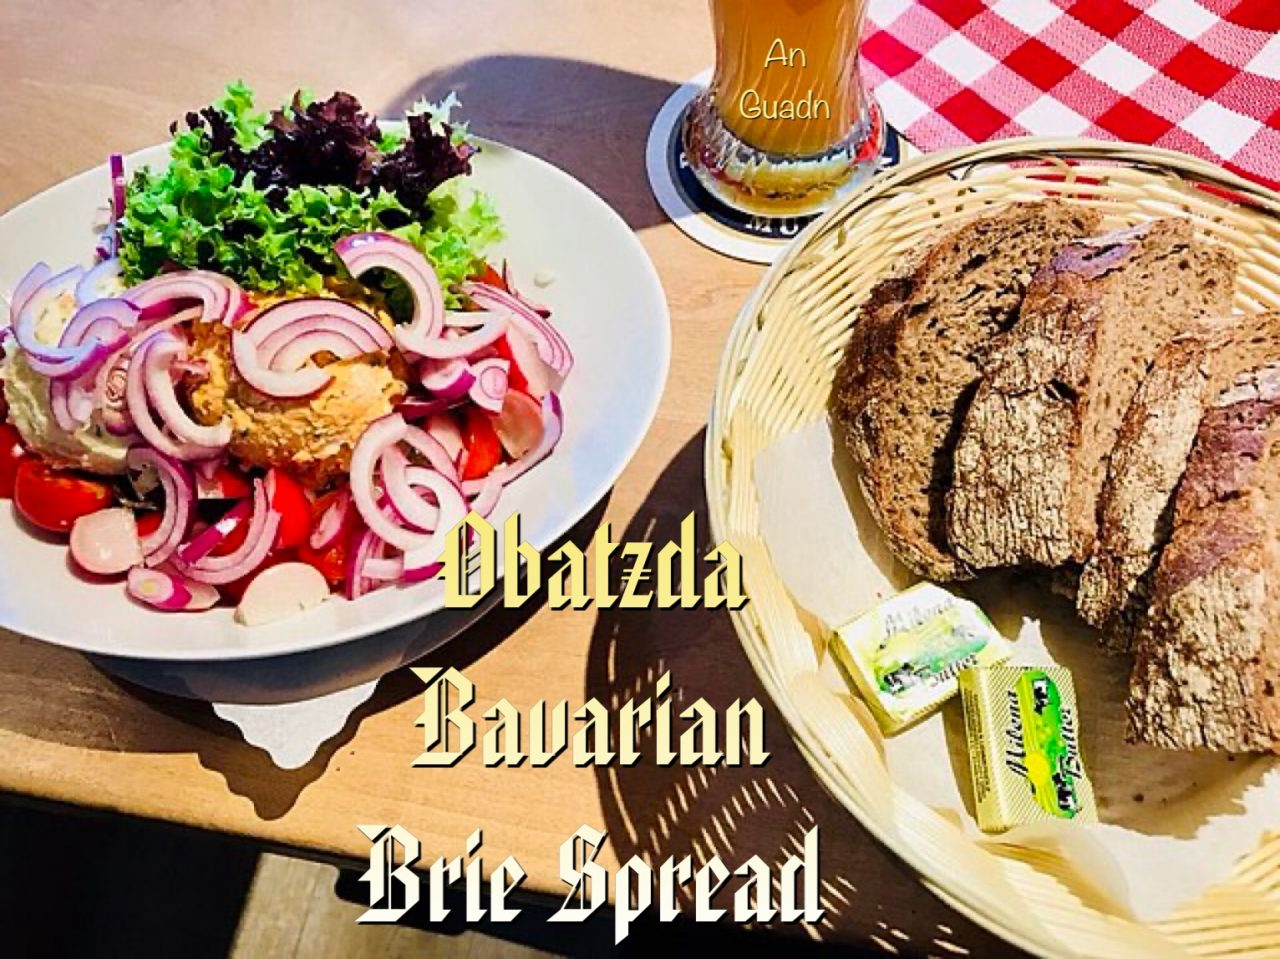 Obatzta, or Brie spread